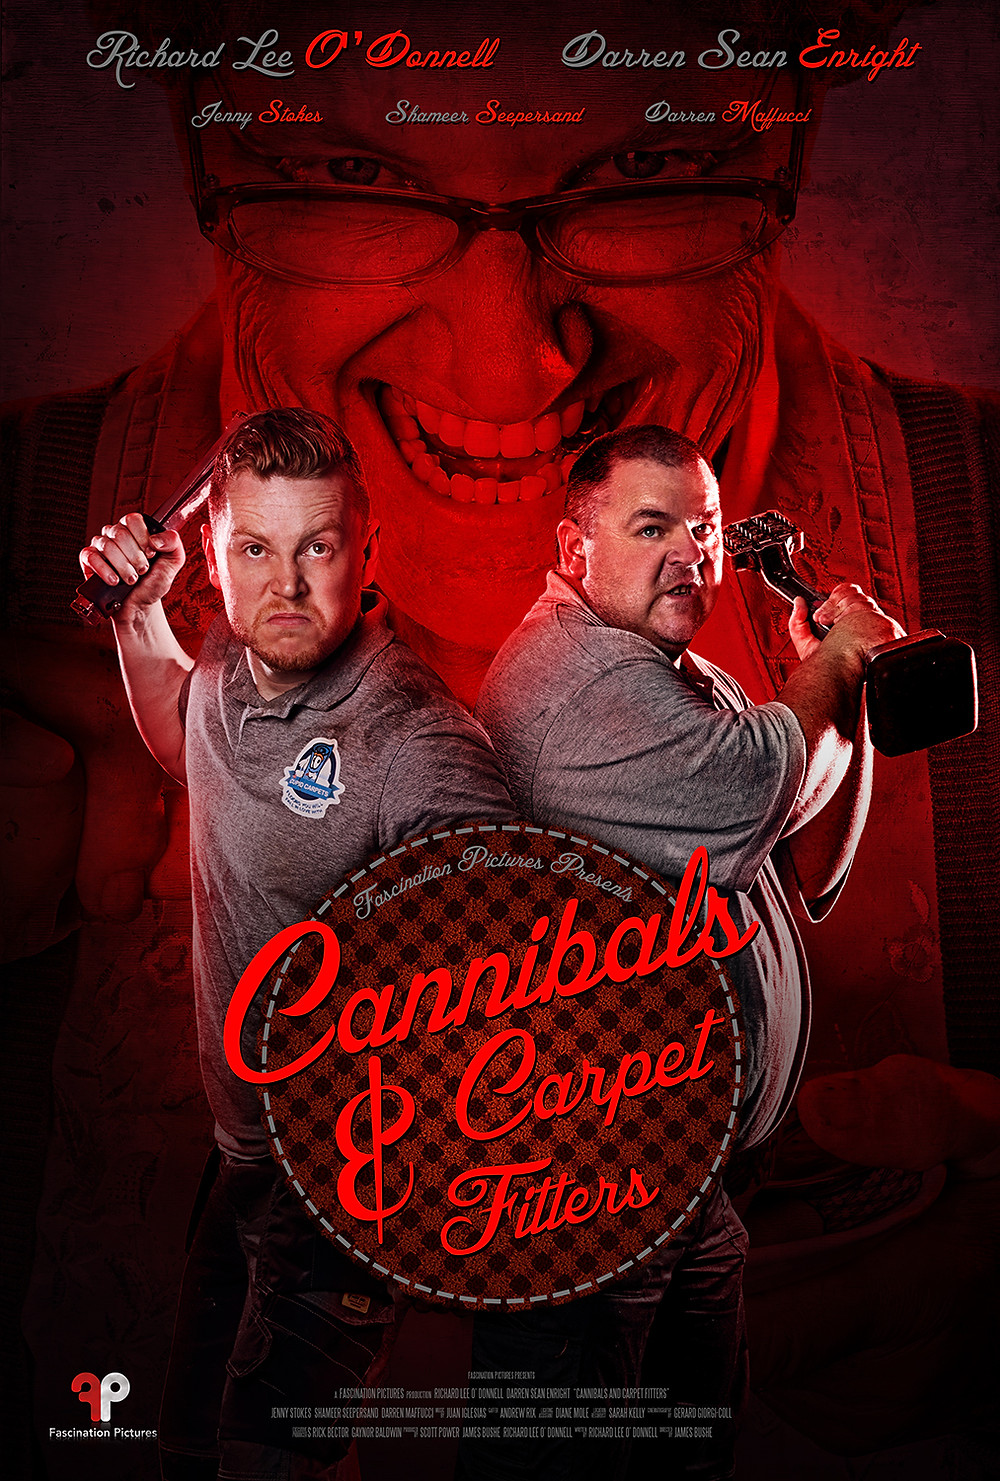 Cannibals & Carpet Fitters review